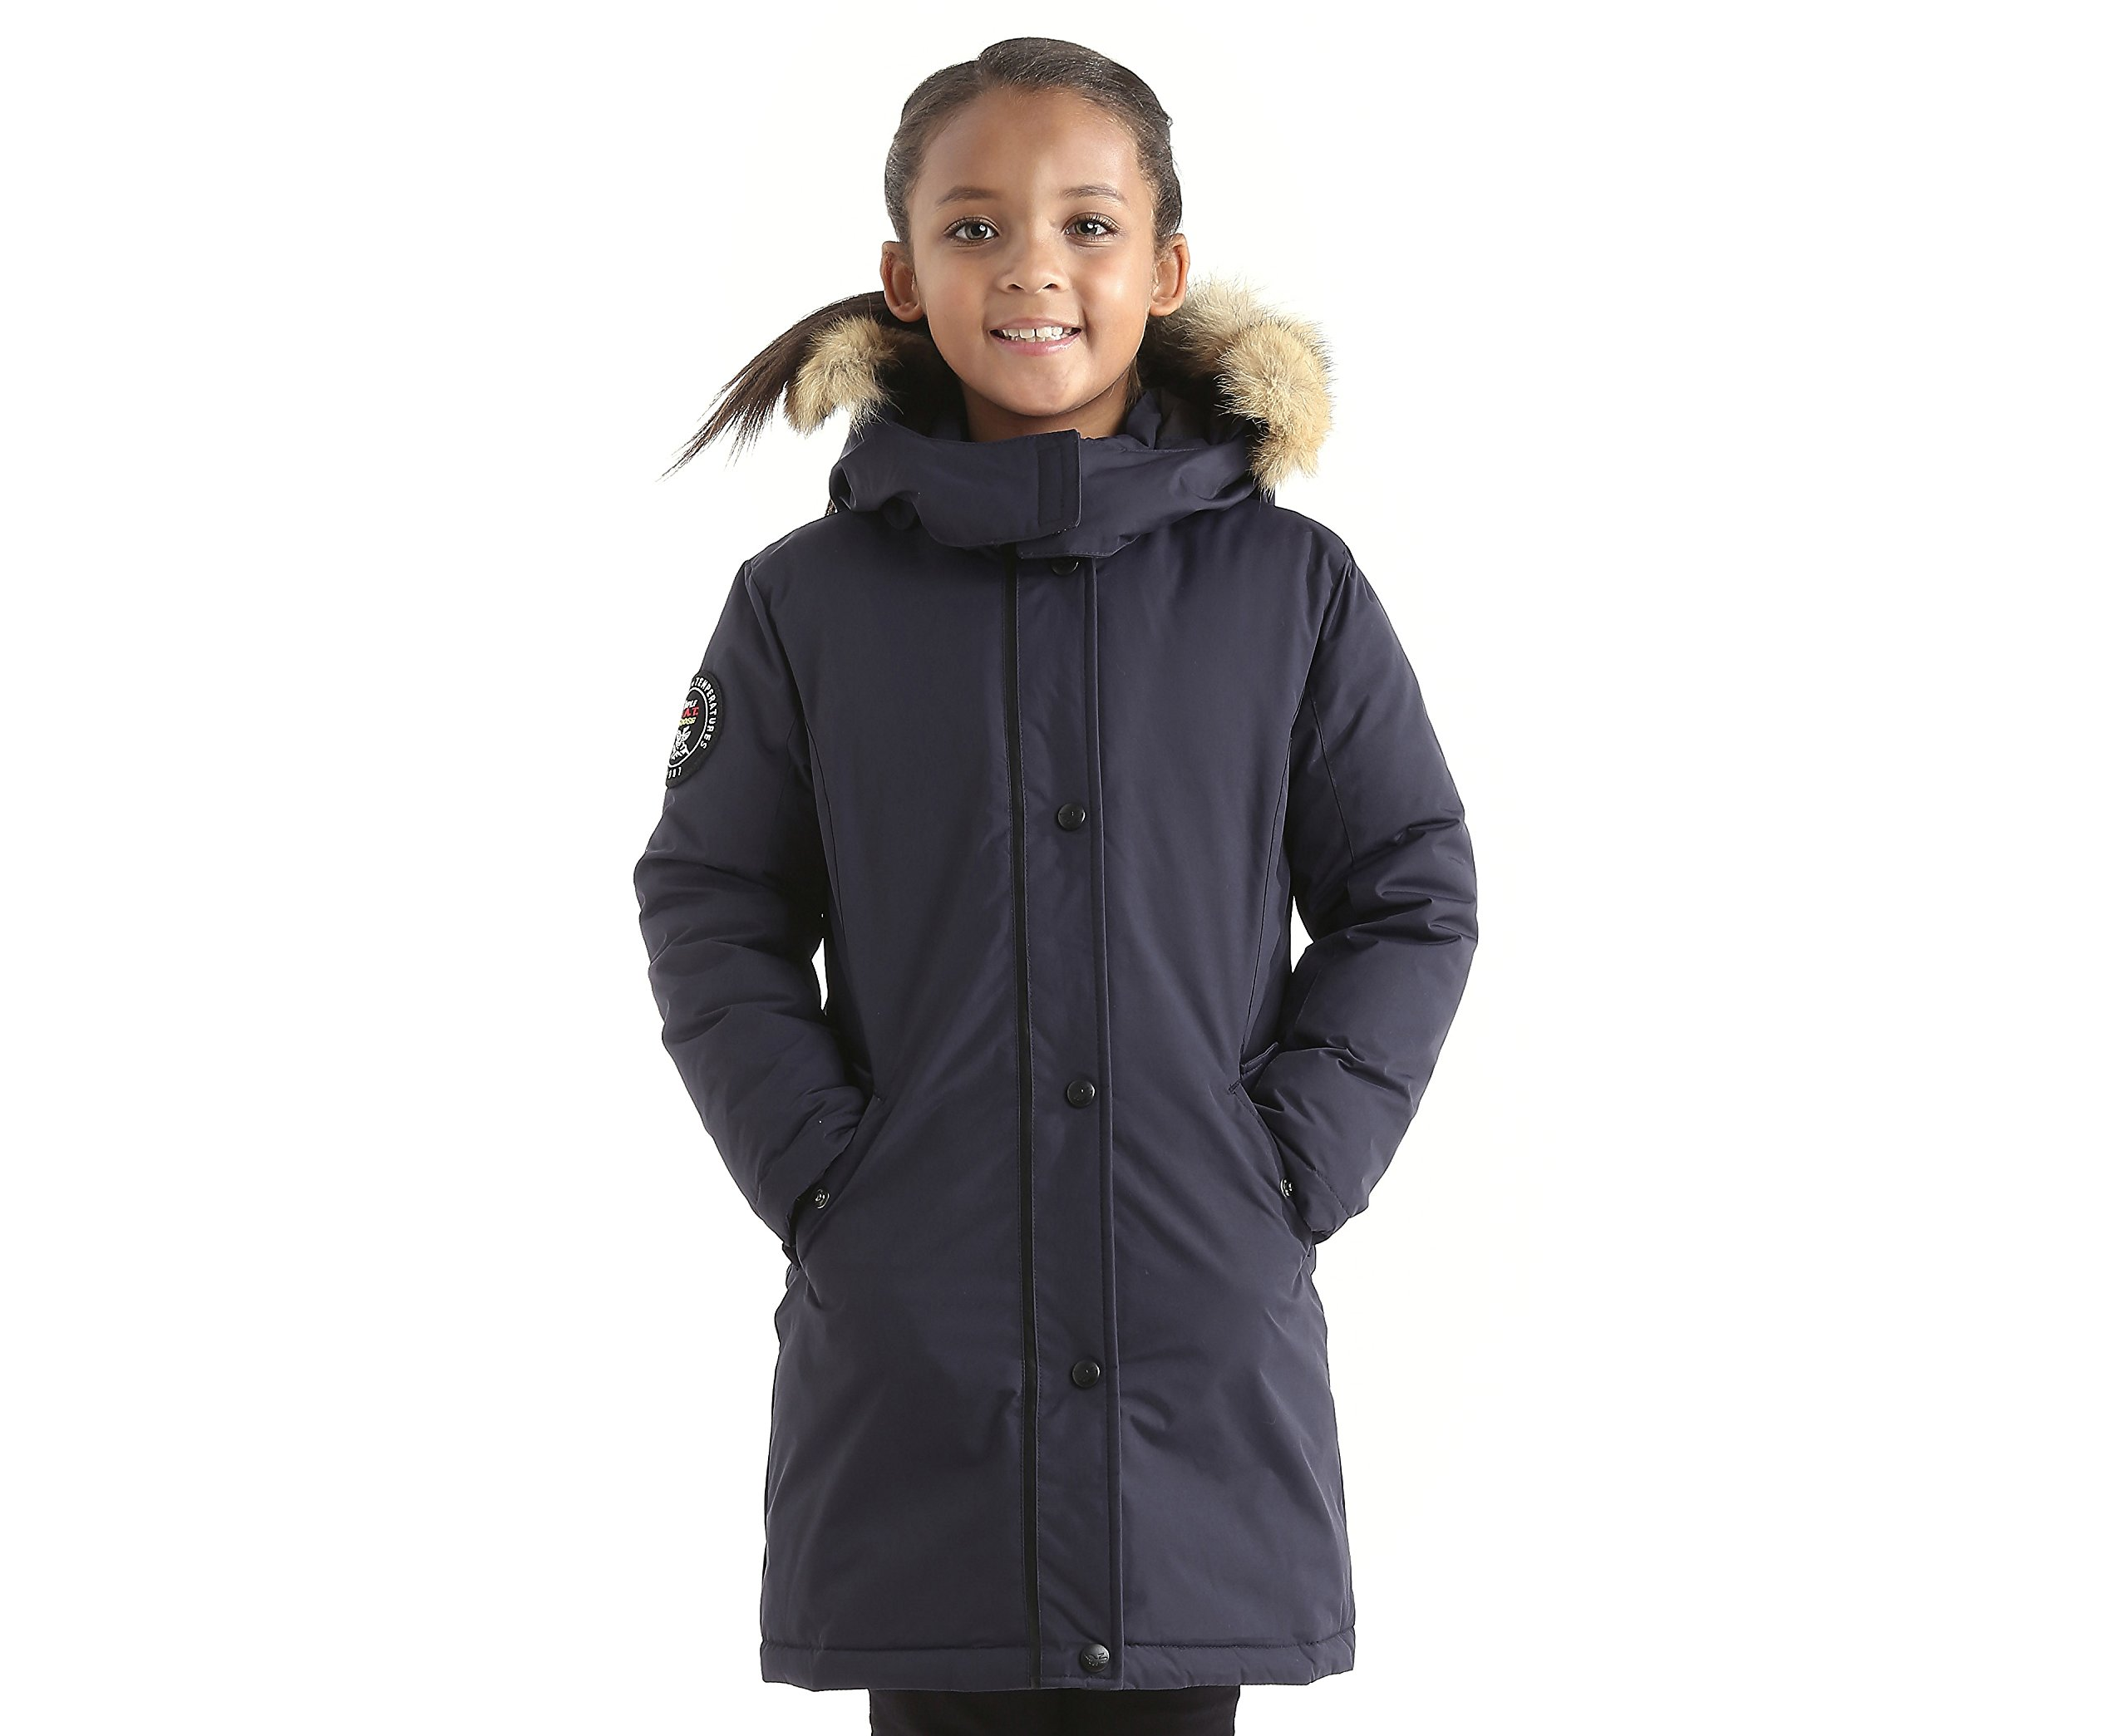 Triple F.A.T. Goose Alistair Girls Down Jacket Parka with Real Coyote Fur (14, Navy) by Triple F.A.T. Goose